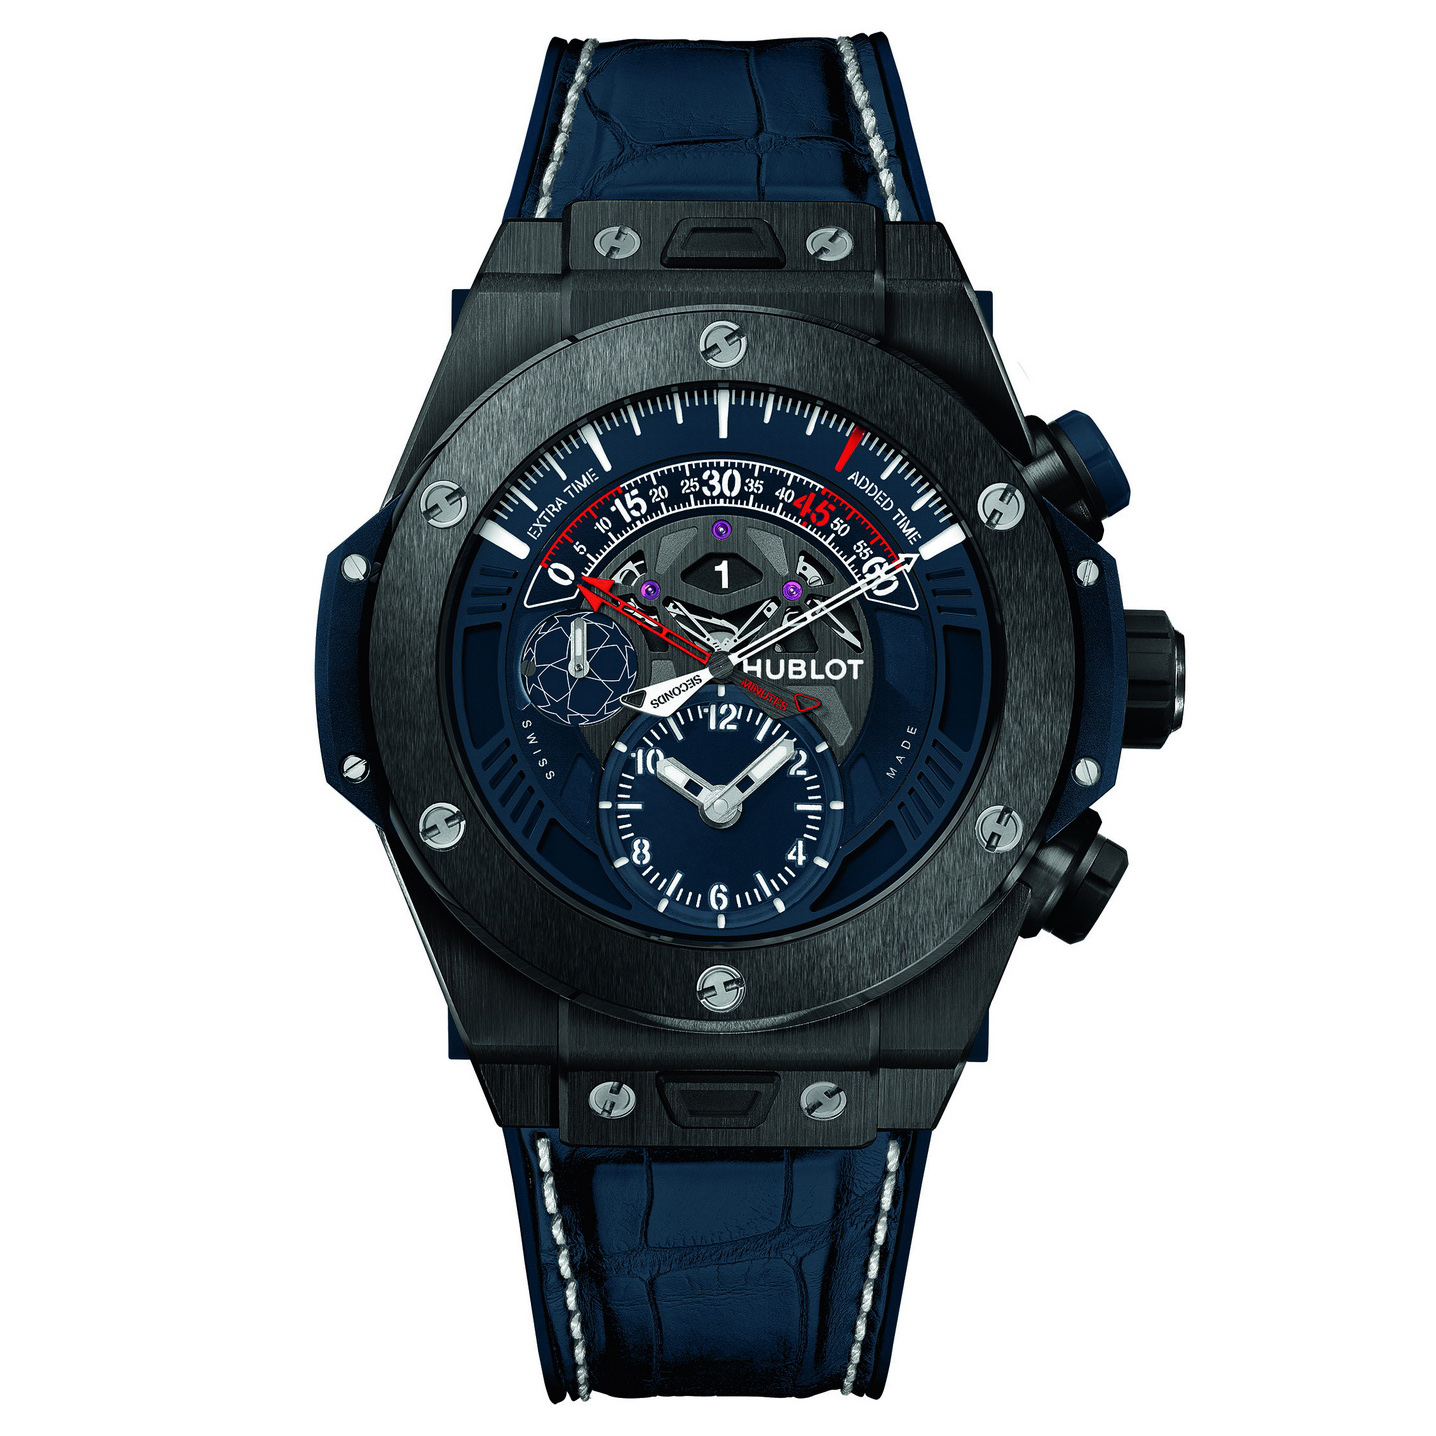 Big Bang Unico Ceramic Chronograph Retrograde UEFA Champions League 413.CX.7123.LR.UCL16